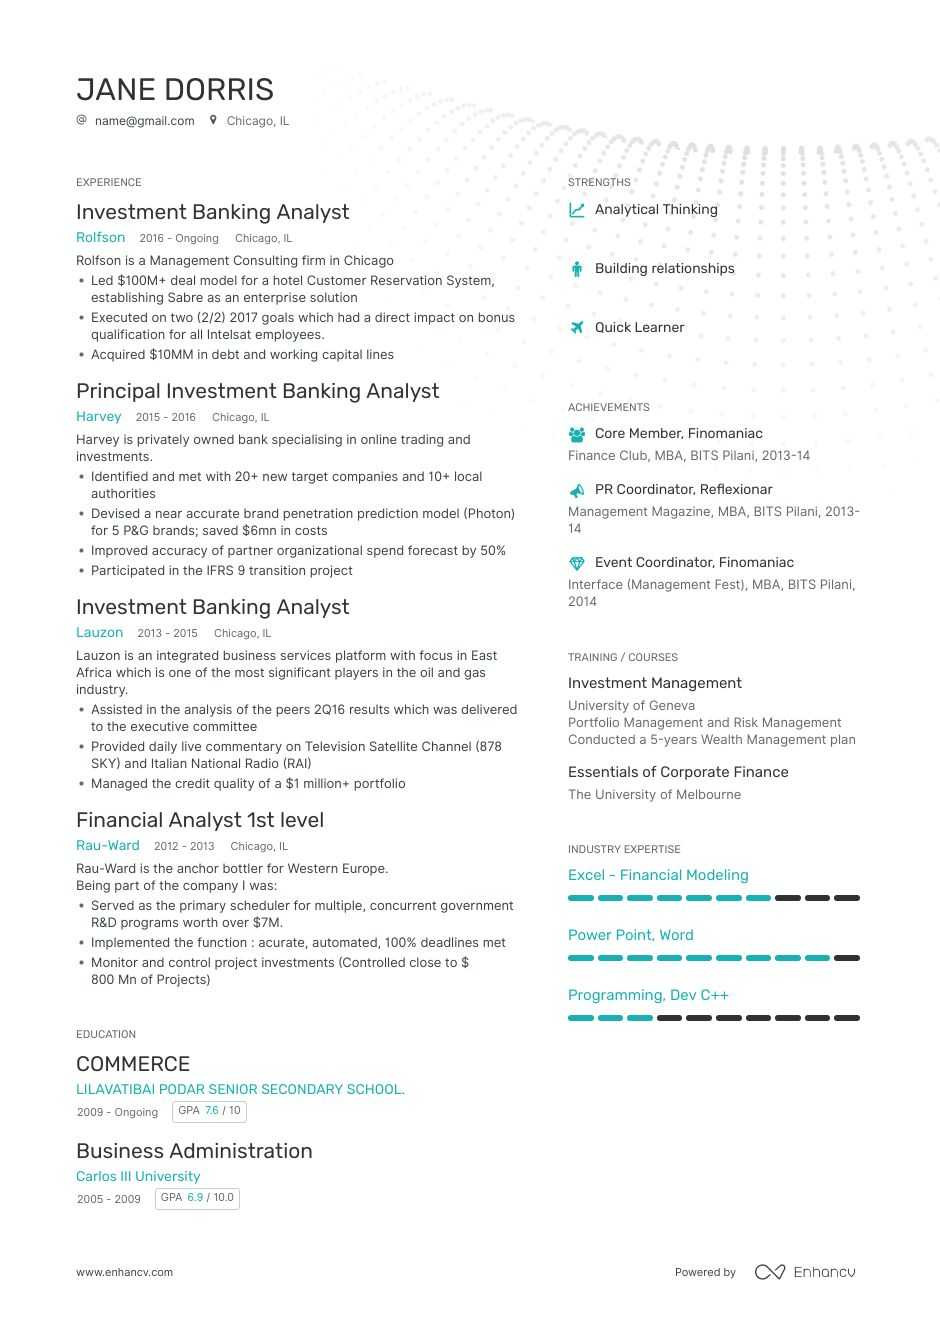 Investment Banking Business Analyst Sample Resume Investment Banking Analyst Resume: 8-step Ultimate Guide for 2021 ...